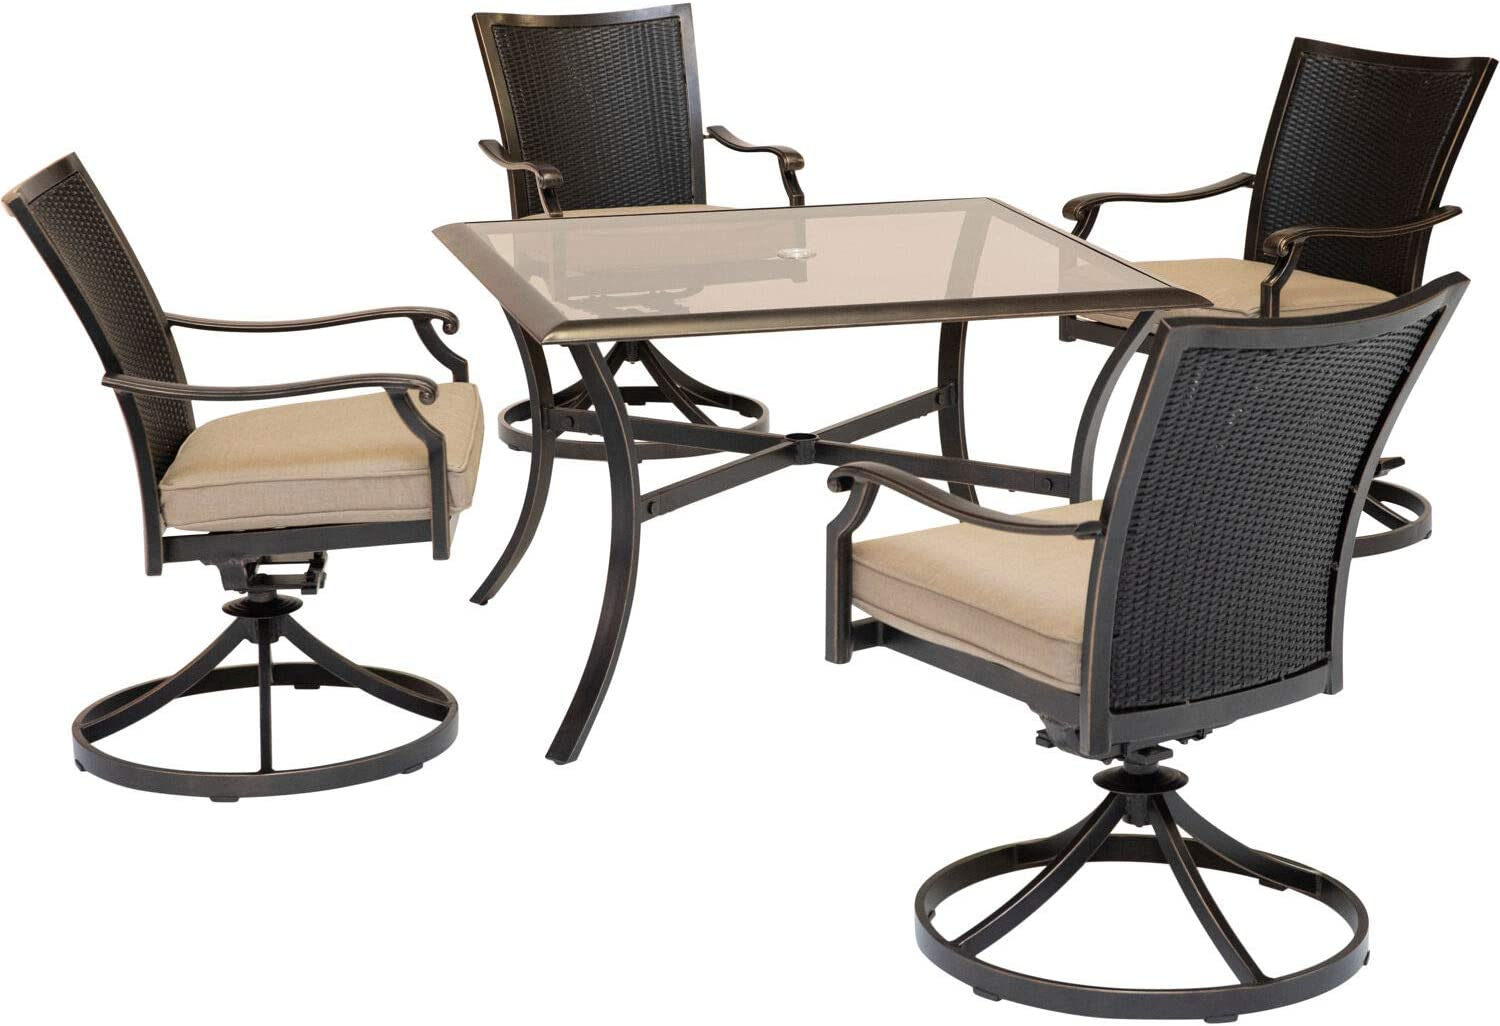 Hanover TRADDNWB5PCSWSQG-TAN Traditions 5-Piece Tan with 4 Wicker Back Swivel Rockers Outdoor Dining Set